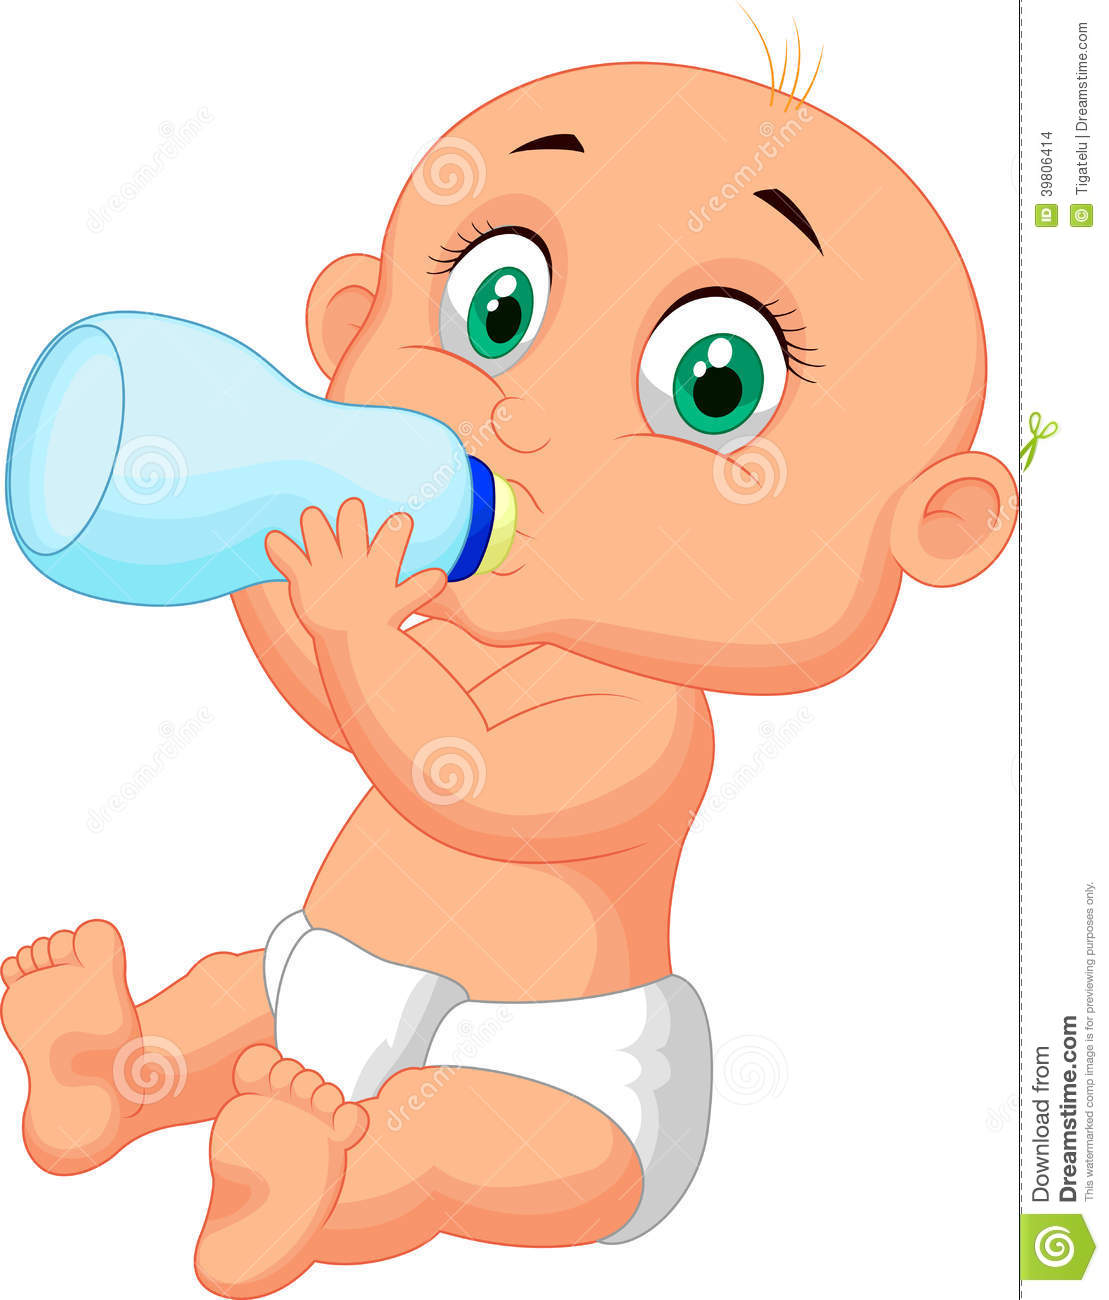 Cute baby cartoon drinking milk from bottle stock vector cute baby cartoon drinking milk from bottle voltagebd Image collections